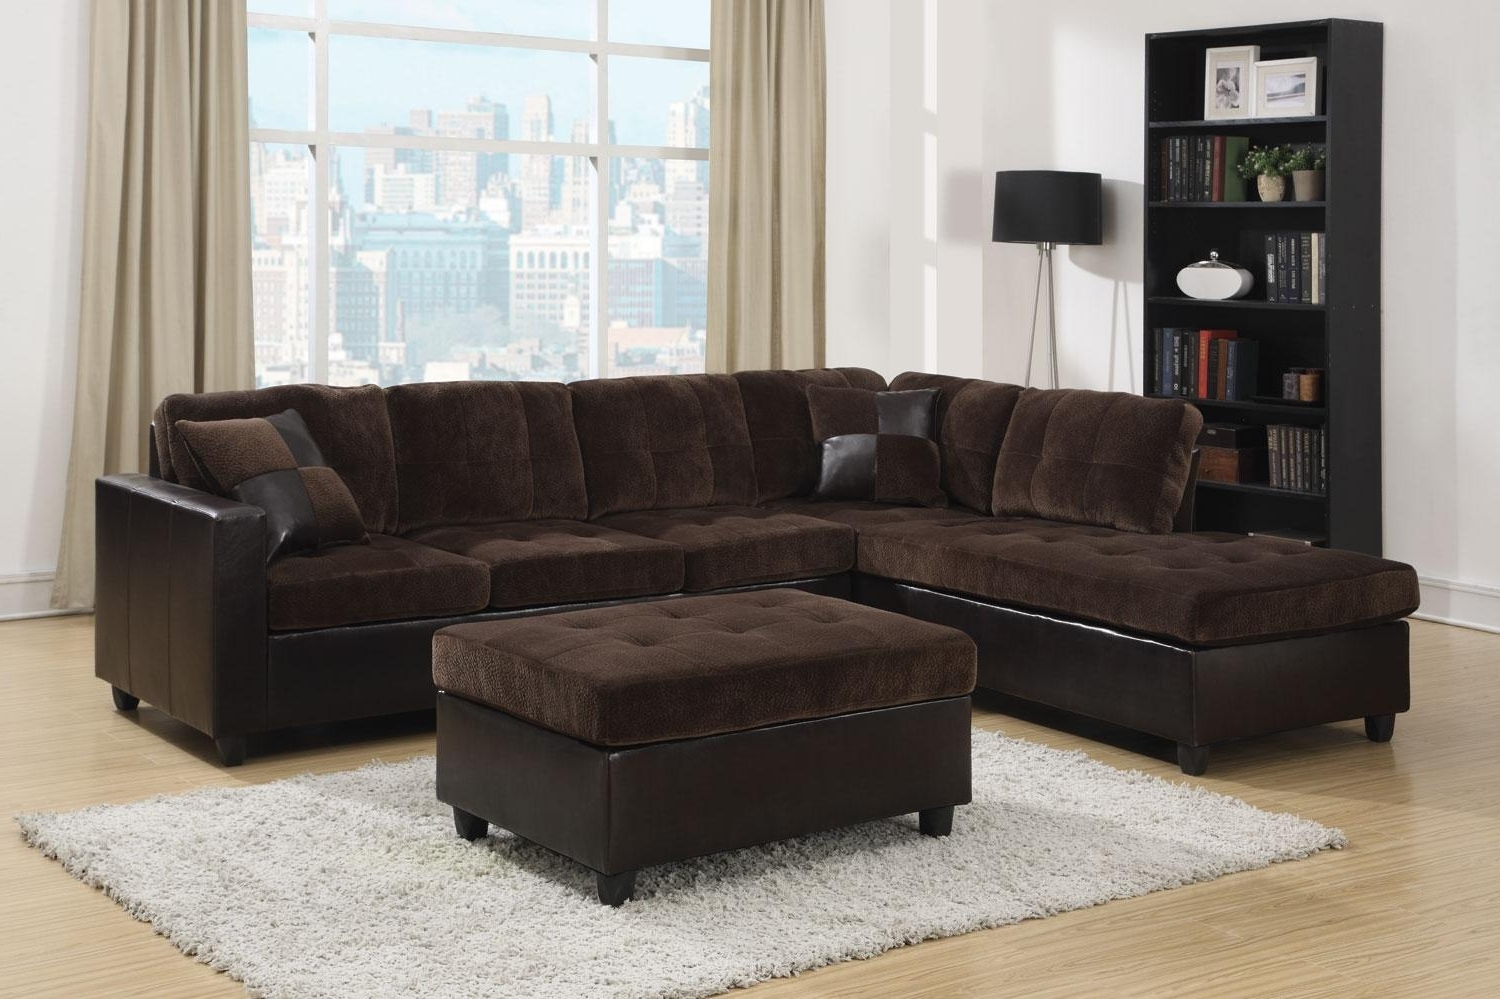 Ivan Smith Sectional Sofas (View 6 of 15)